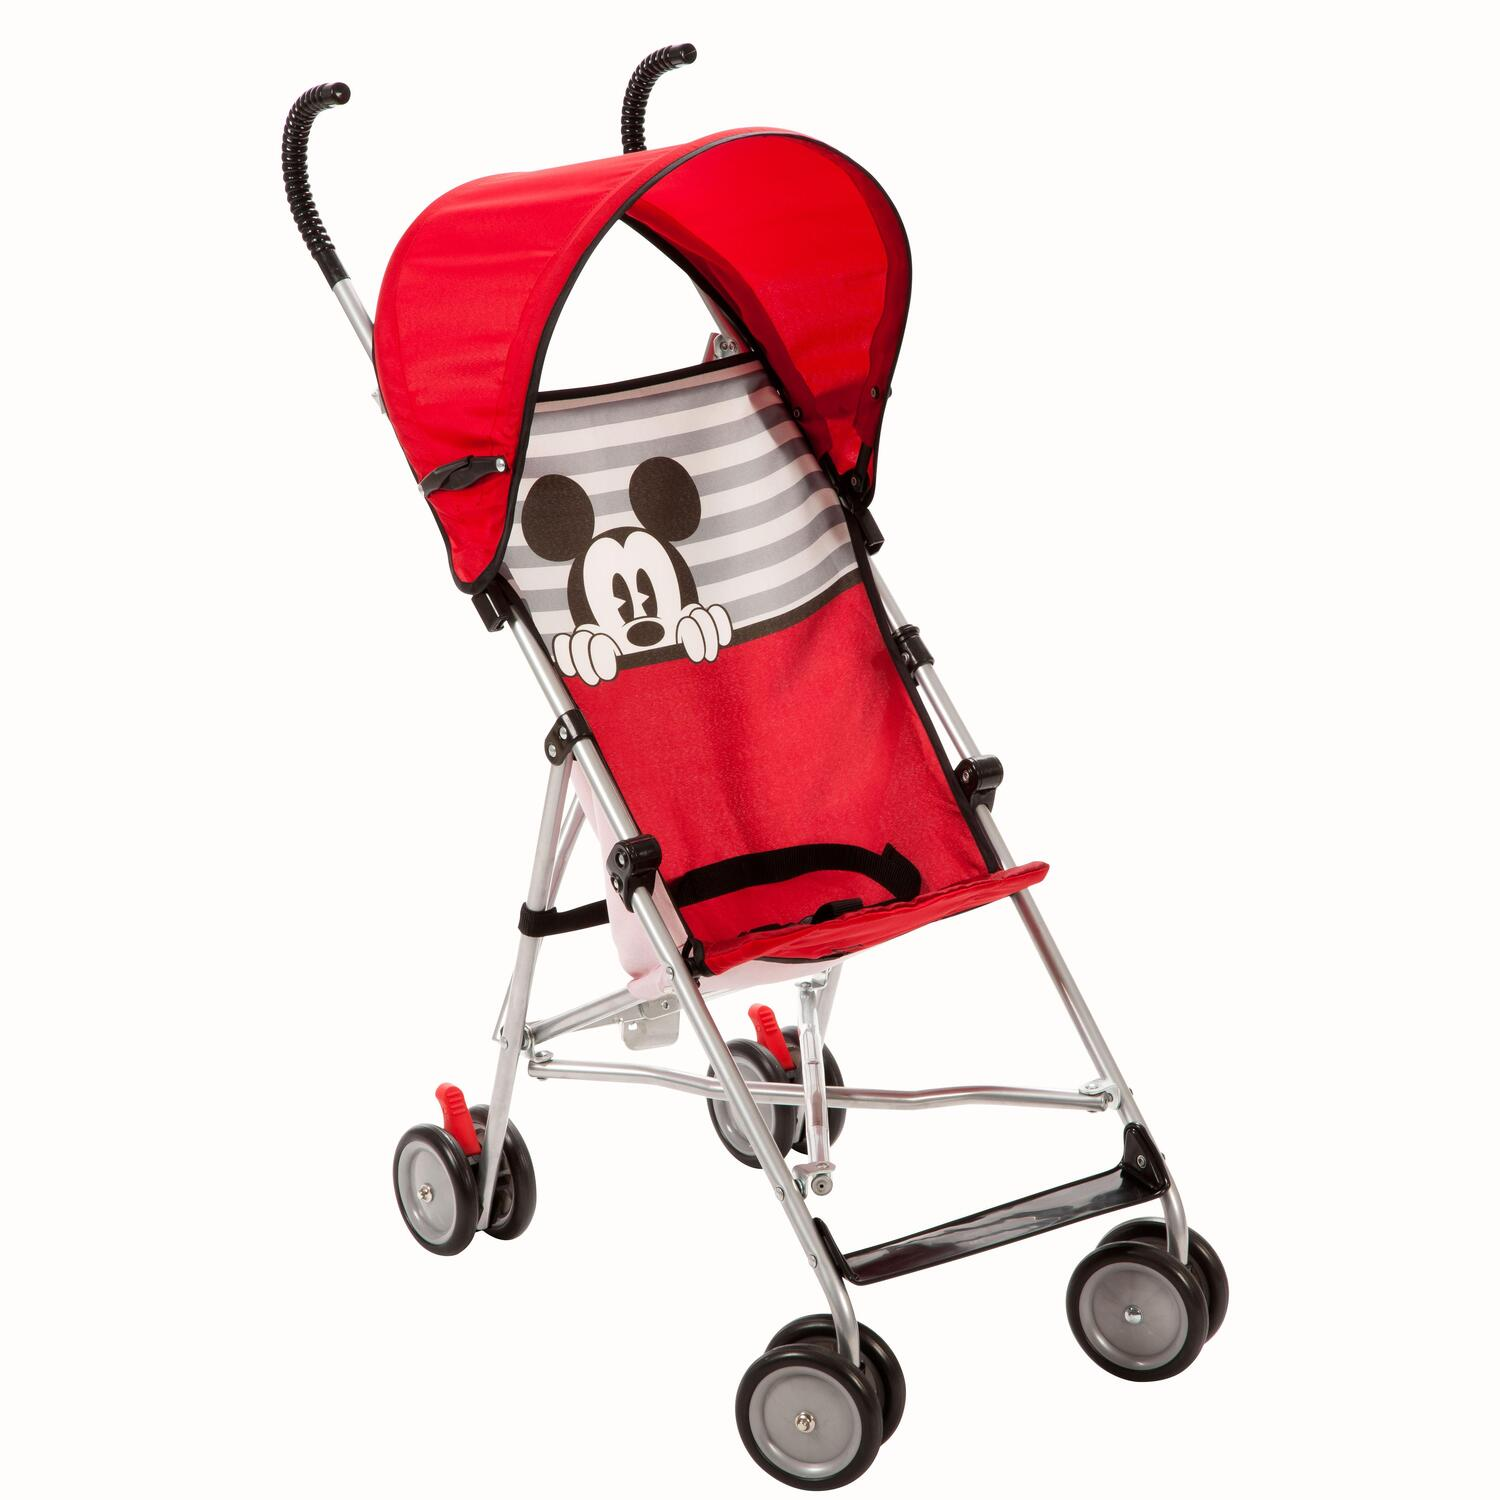 Disney 174 Umbrella Stroller With Canopy No Window From